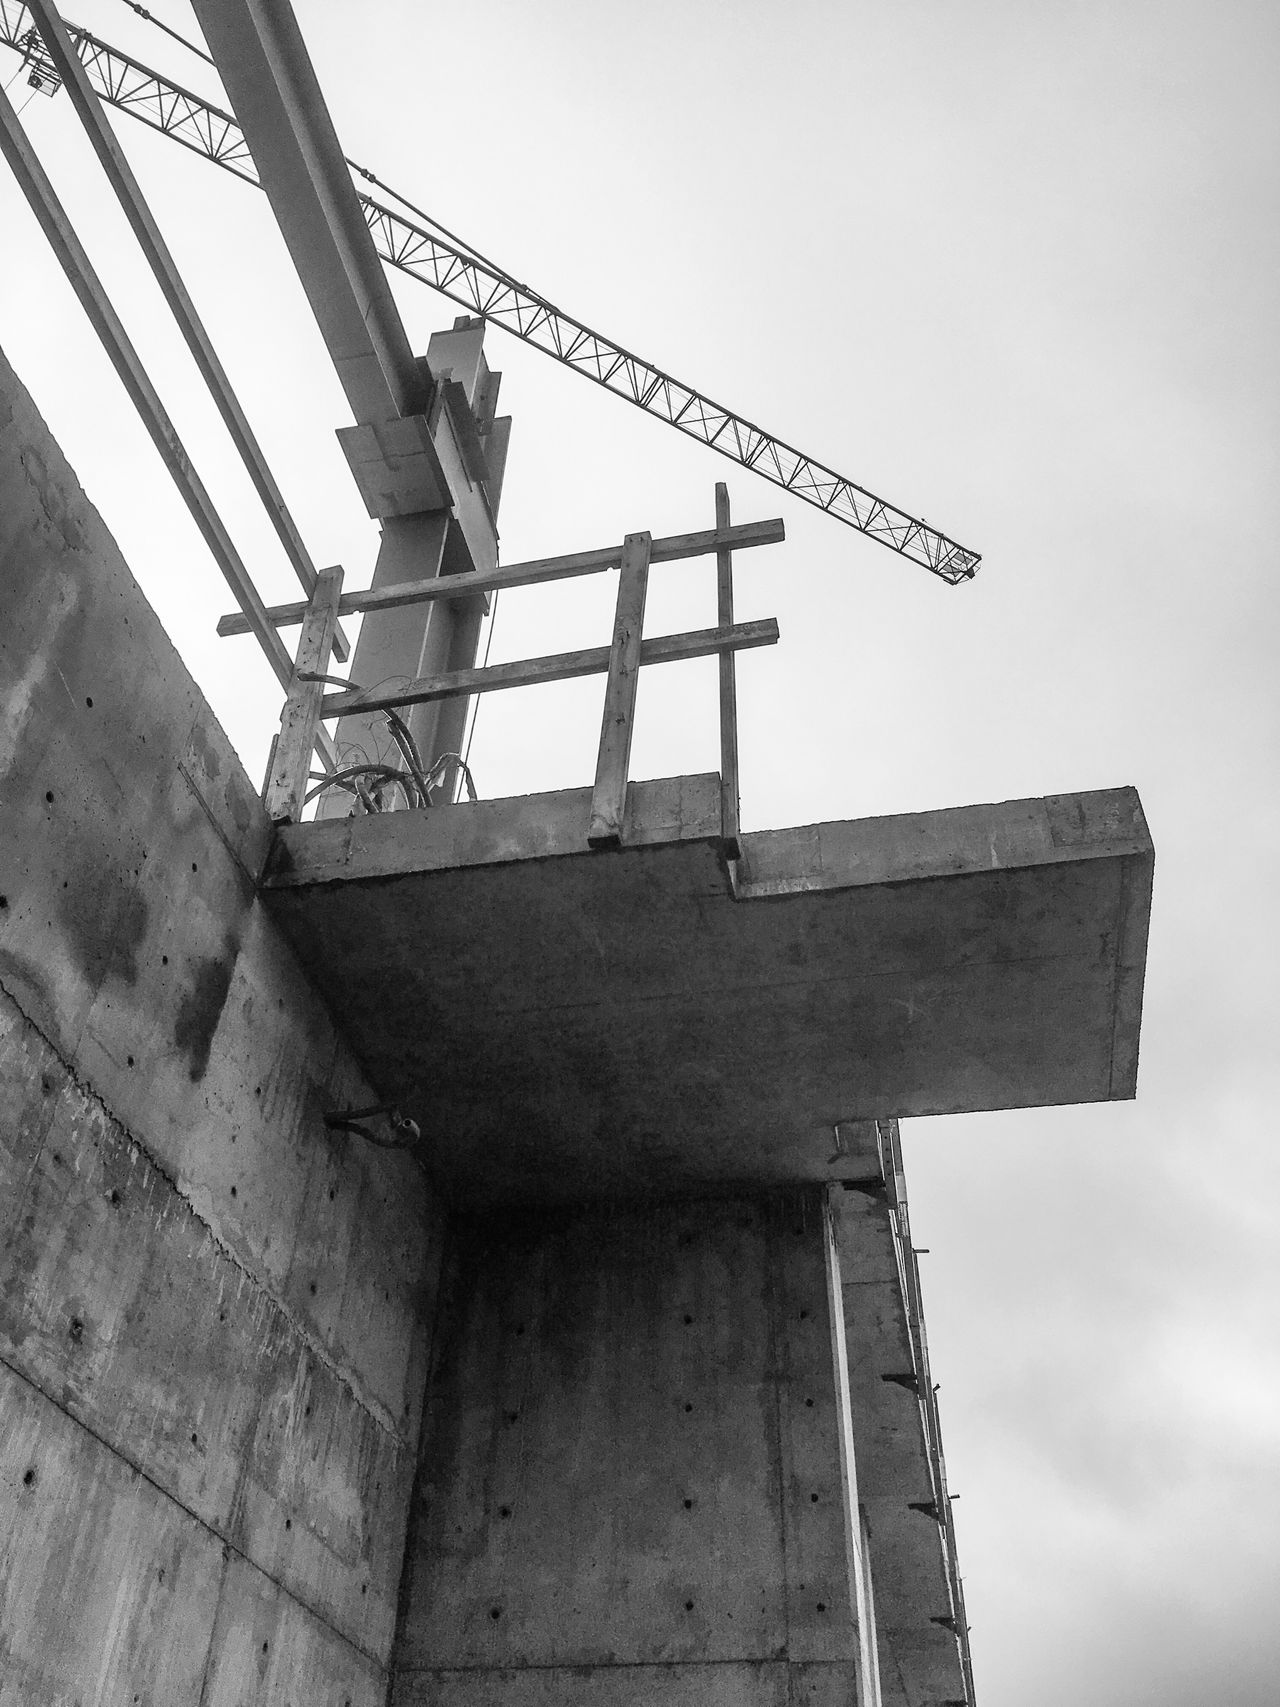 Low Angle View Architecture Concrete Construction Zone Construction Crane Black And White